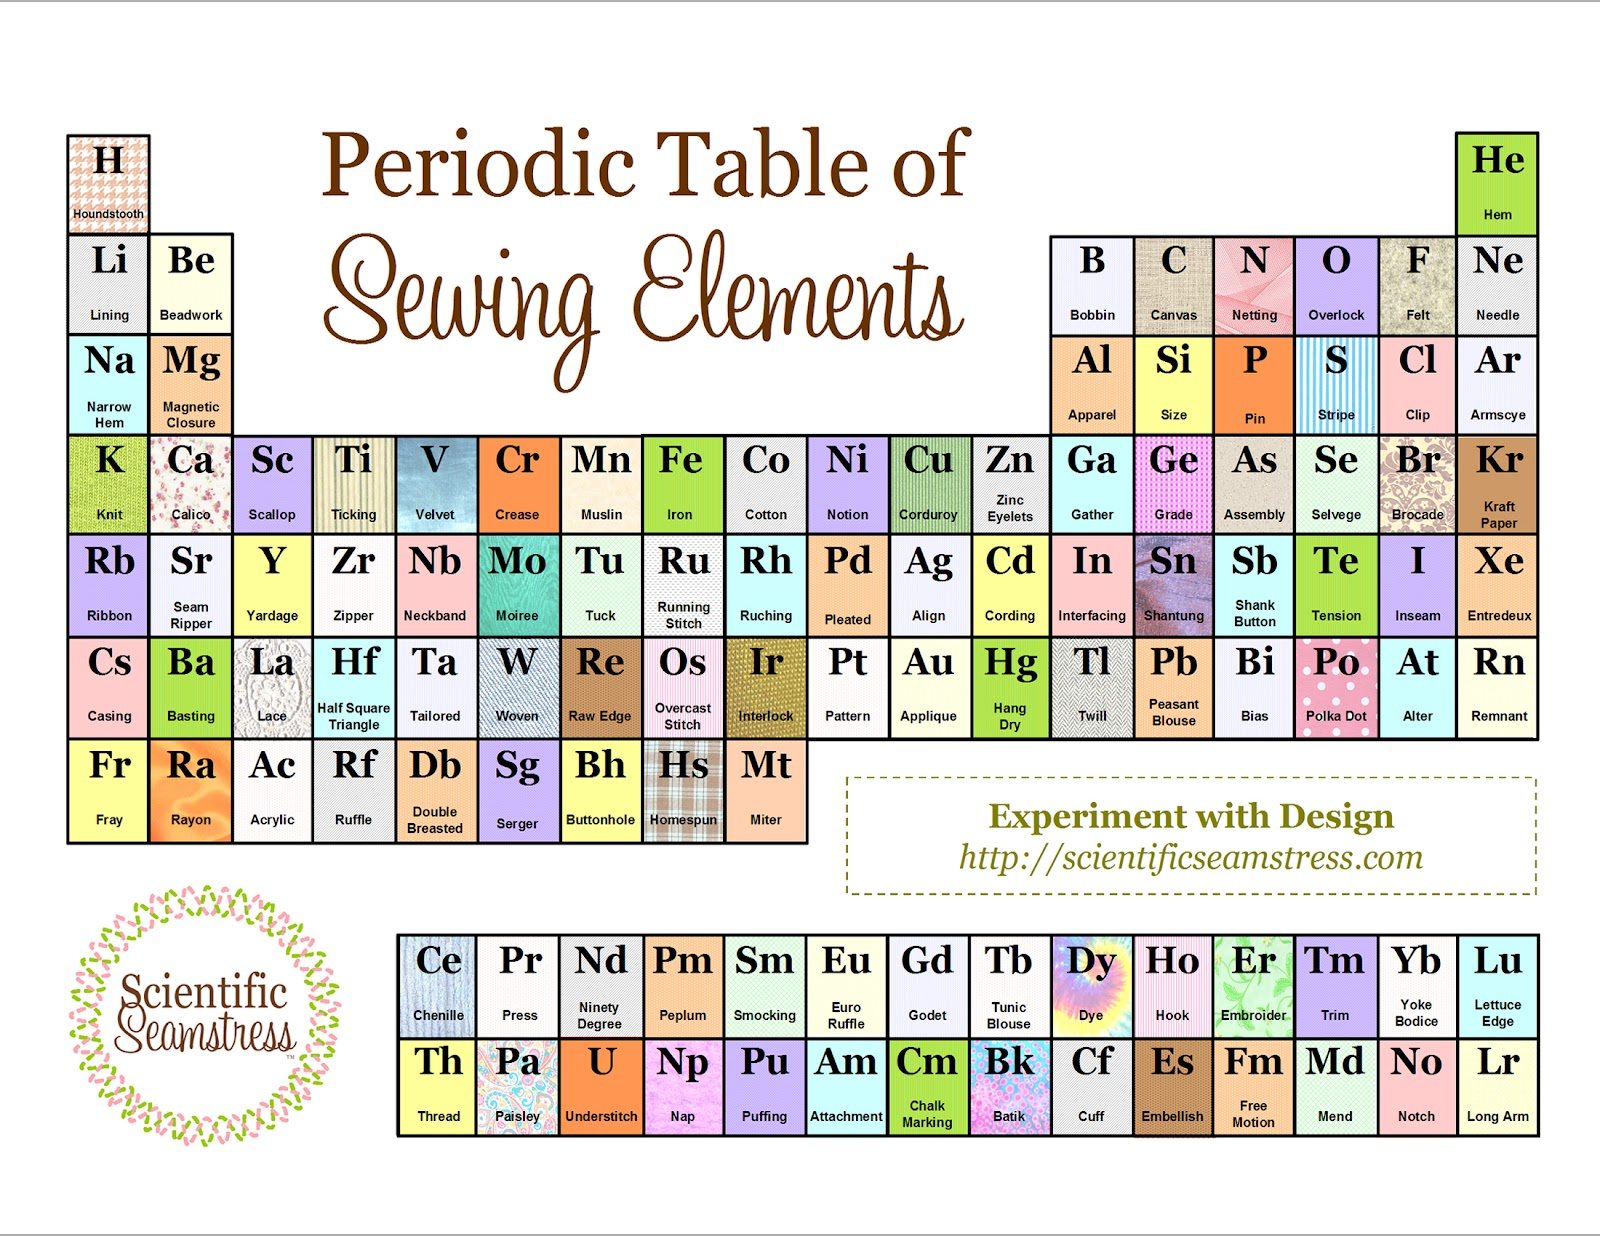 Kristines sewing blog periodic table of sewing elements you can get it printable and add stylish element to your sewing room also talking about sewing room i would like to share photos of mine sewing place gamestrikefo Gallery